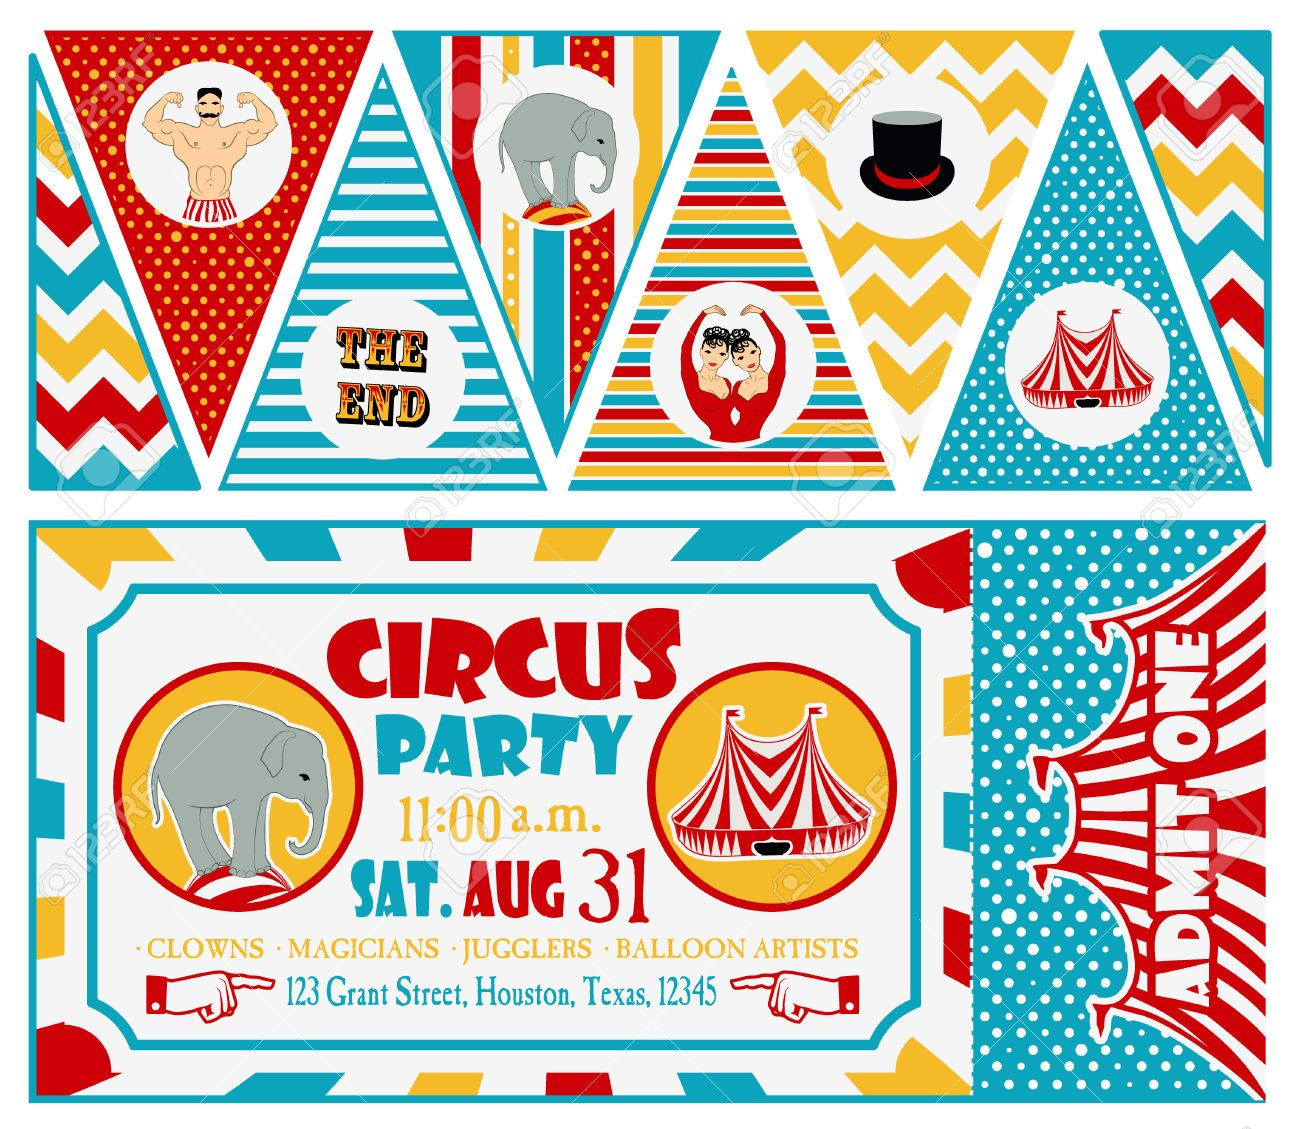 43083401-Circus-Ticket-on-tree-background-Vector-illustration-Stock-Vector.jpg (1300×1129)